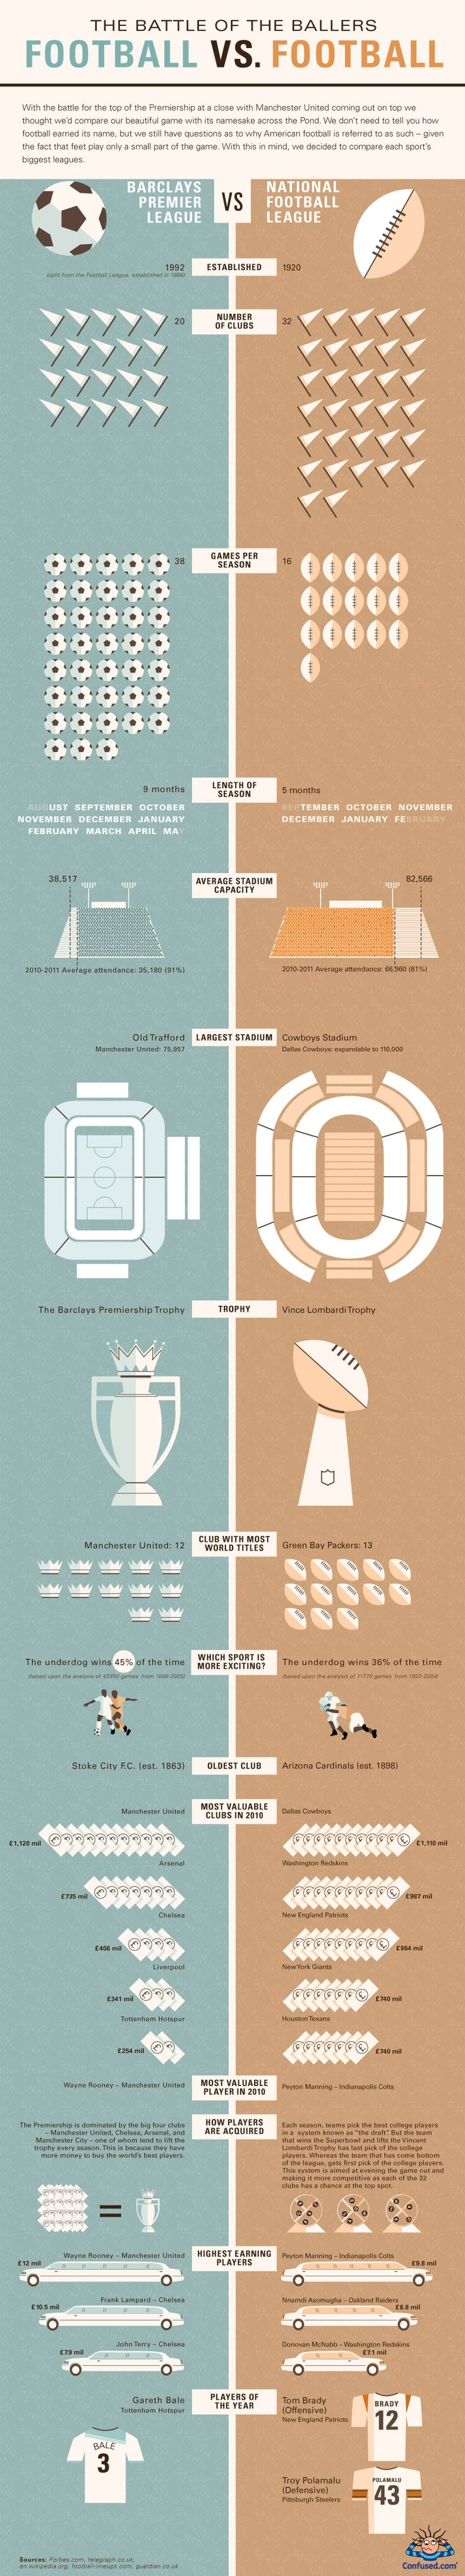 a breakdown some of the key differences in the 2 games (Football)